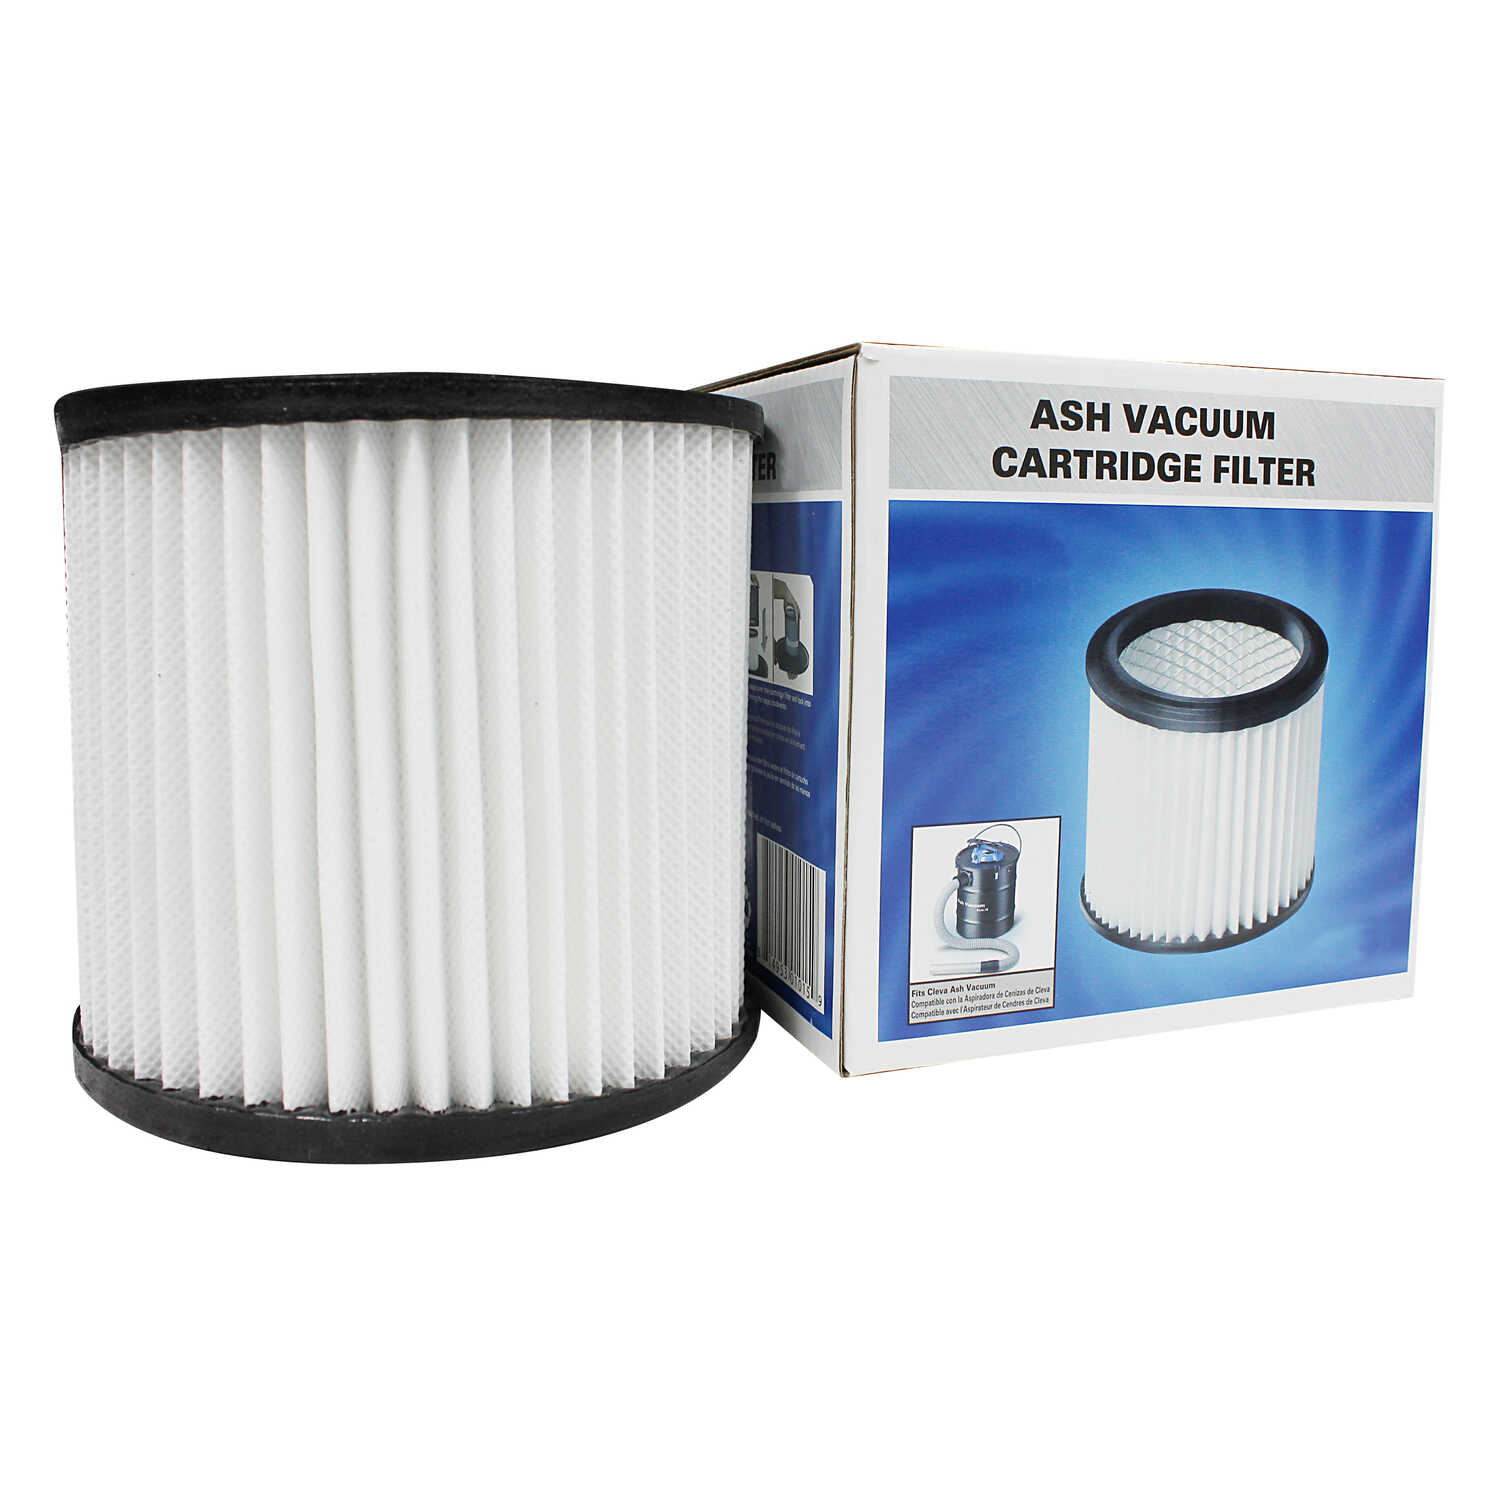 Darcon  5.4 in. L x 5.5 in. W CARTRIDGE  Ash Vacuum Cartridge Filter  White  1 pc.